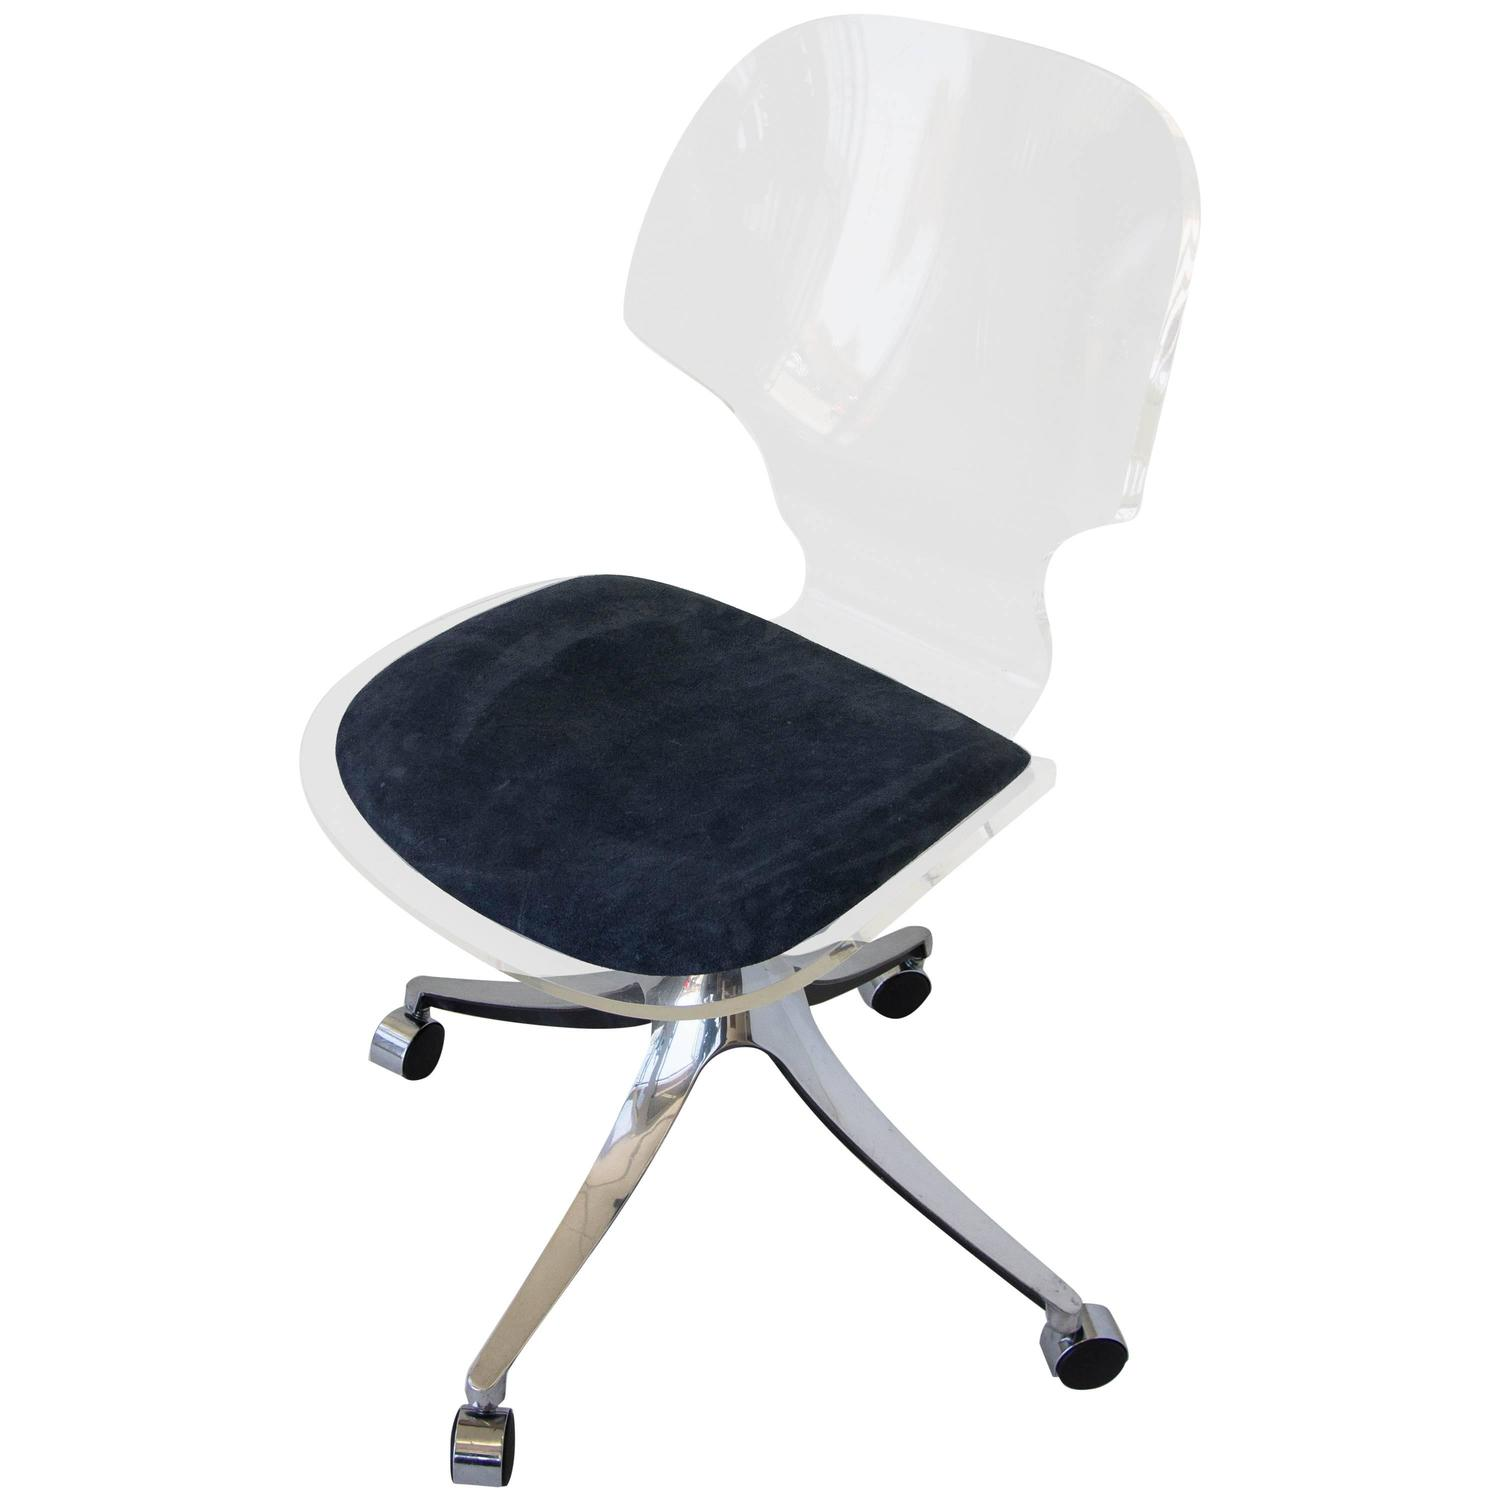 Roller Chairs Hill Manufacturing Co Lucite Rolling Desk Chair At 1stdibs